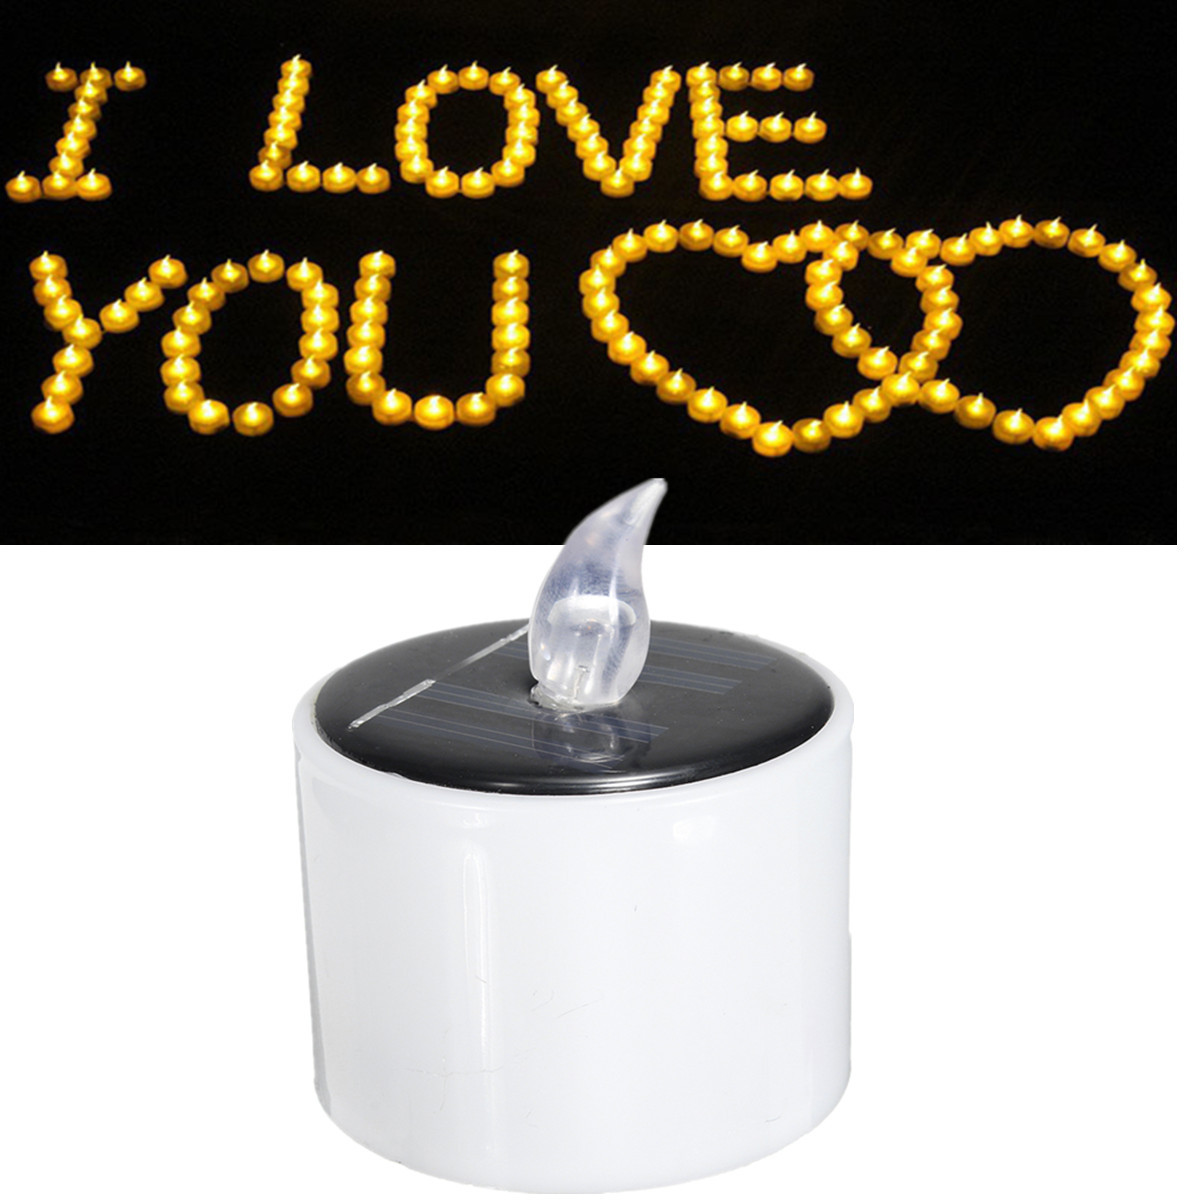 Solar Powered LED Candle Battery Wedding Decor Romantic Warm White Tea Light